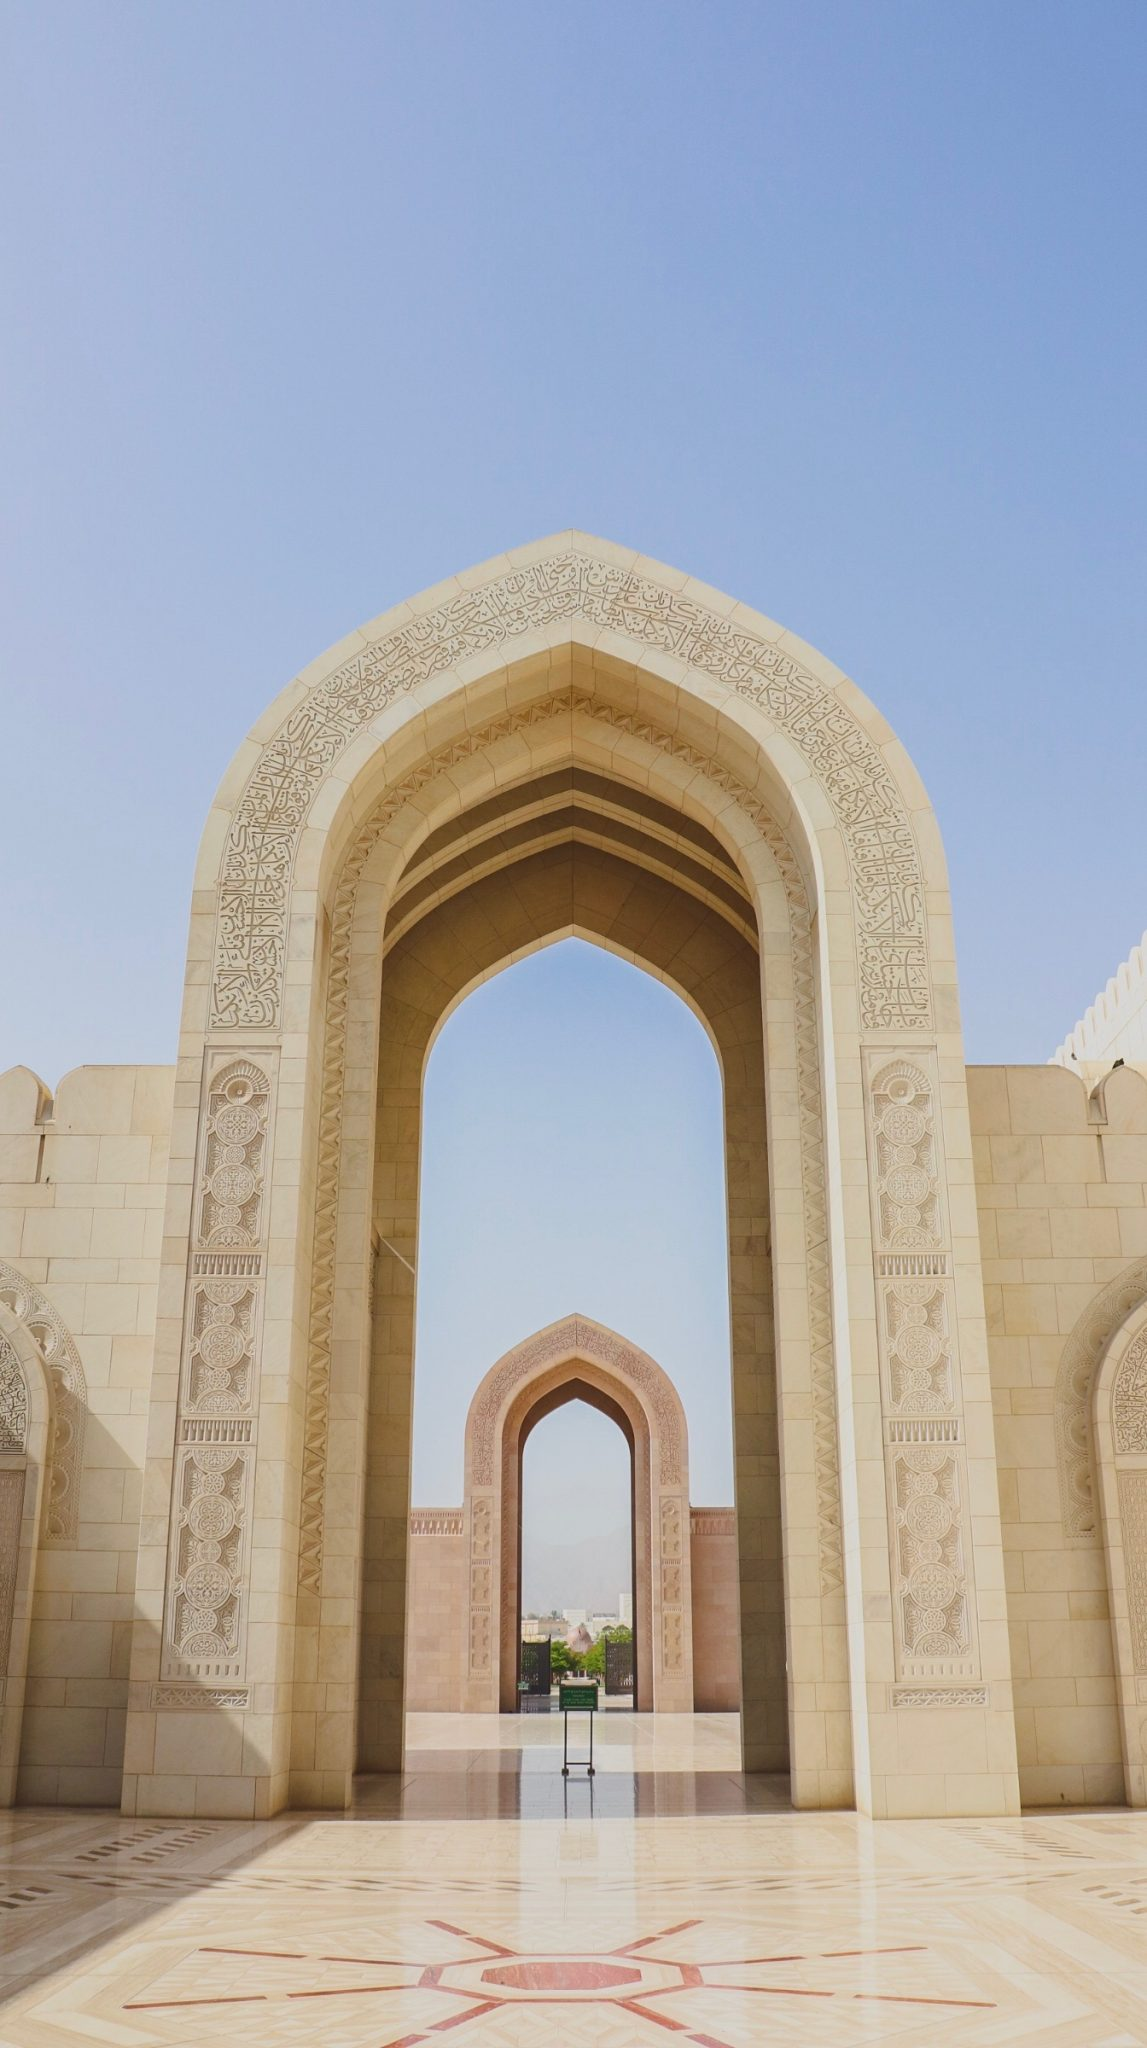 Oman Road Trip from Dubai + Places to Stop - Muscat mosque